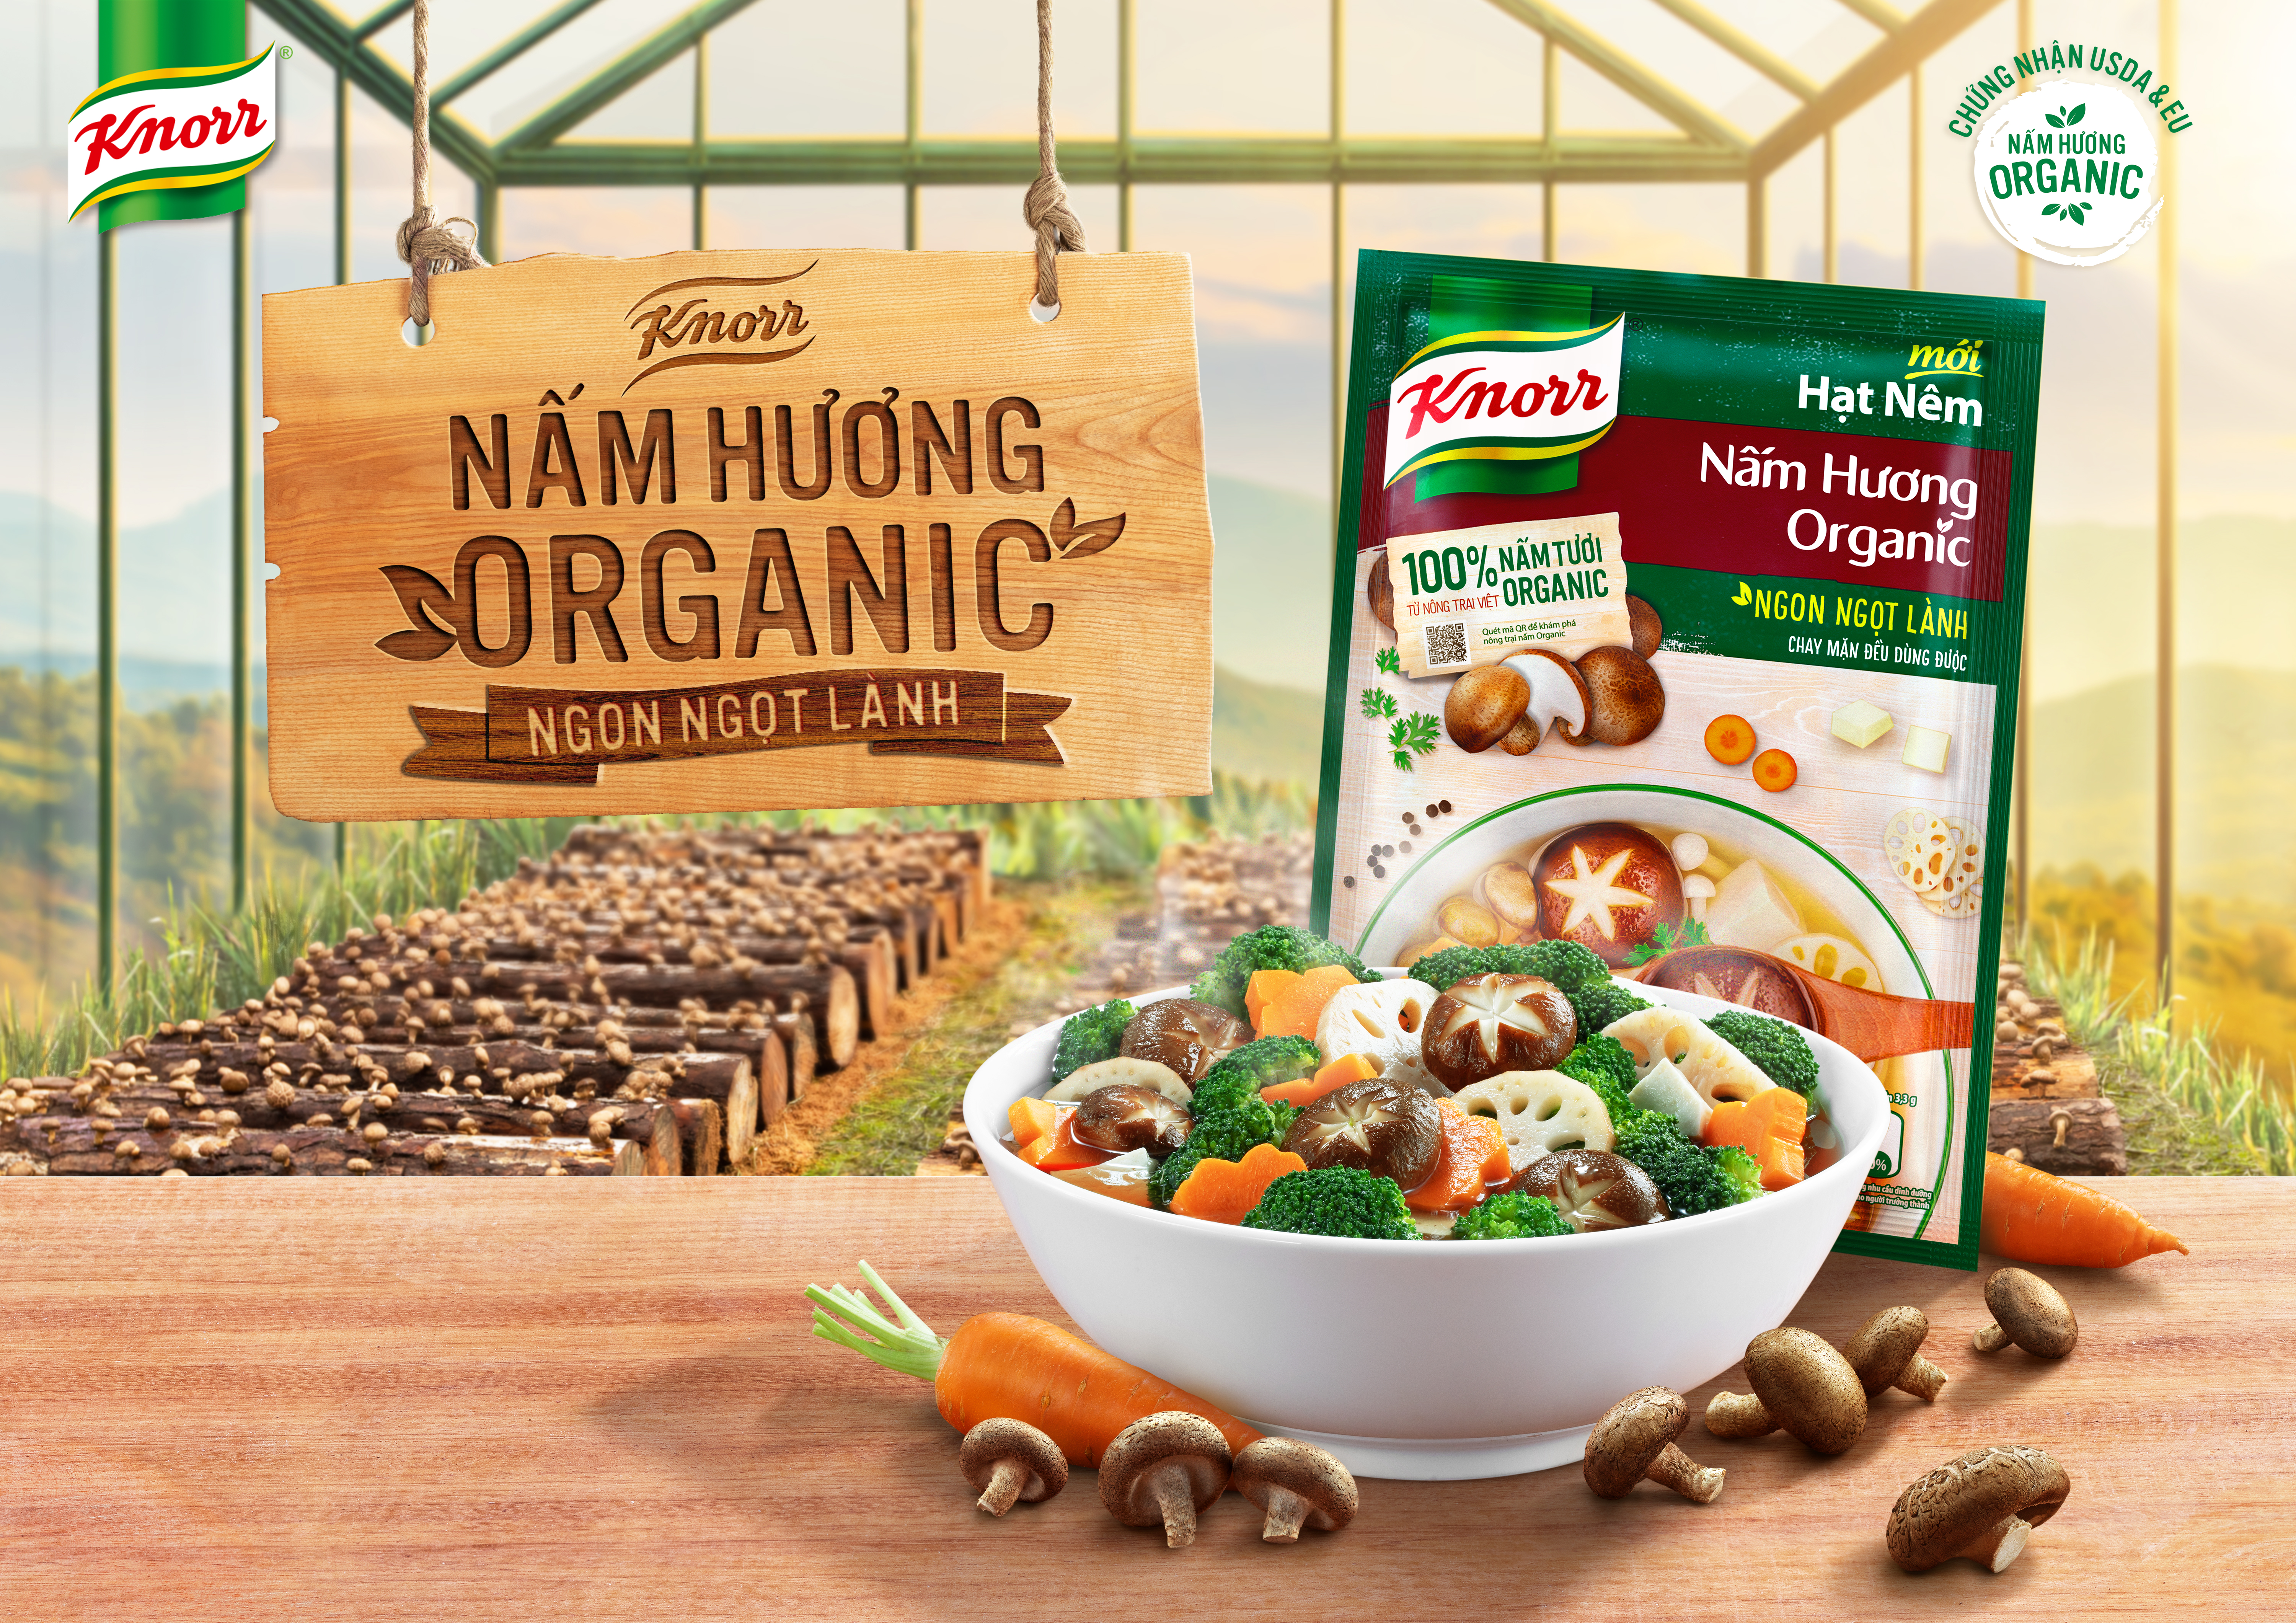 Launch strategy and comms for Unilever's entry into organic mushrooms